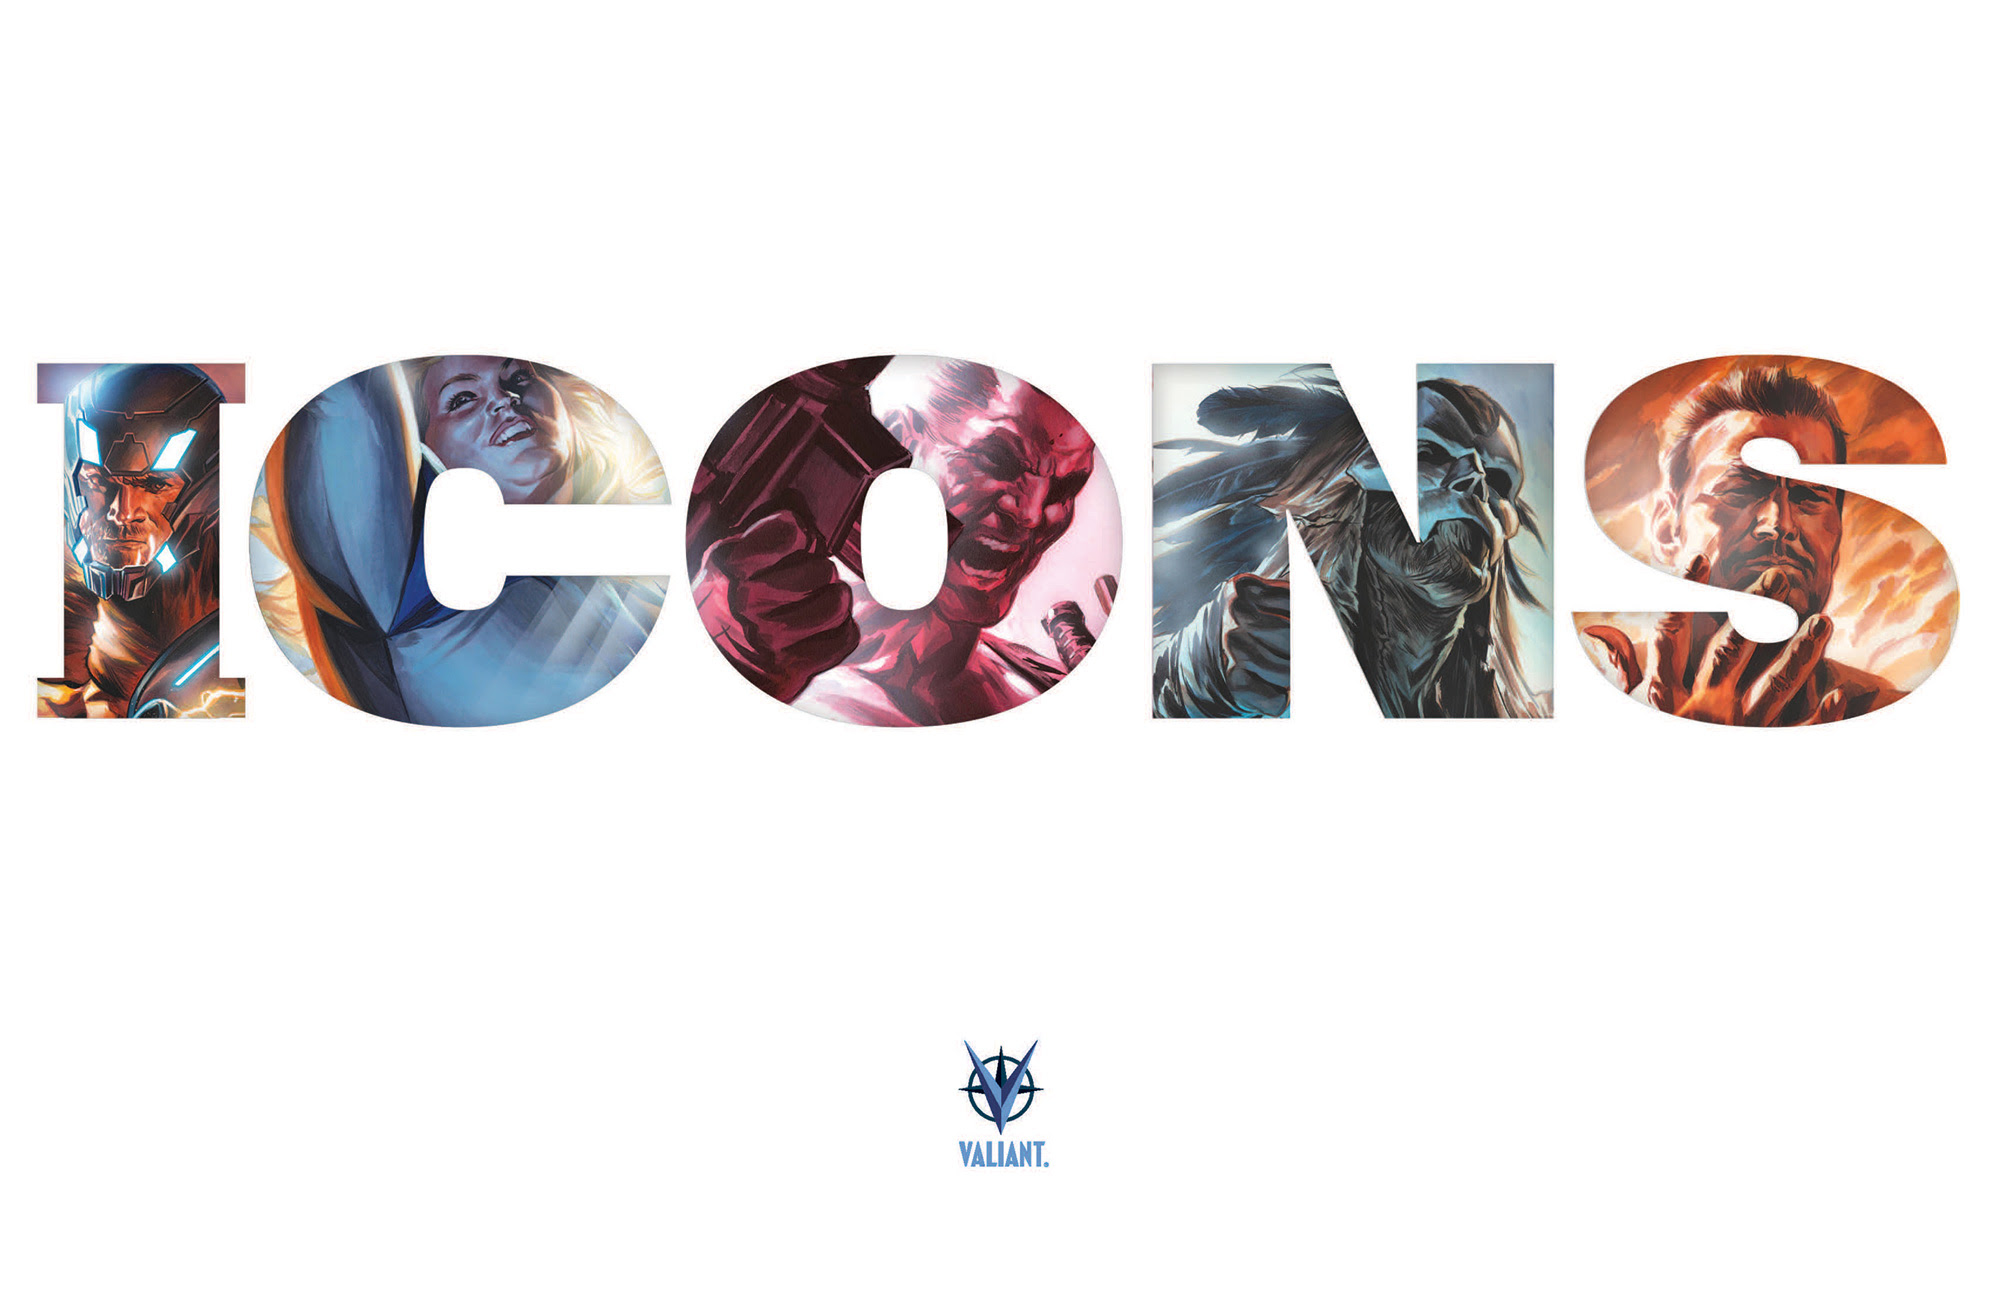 Valiant Presents ICONS – Beginning in 2017